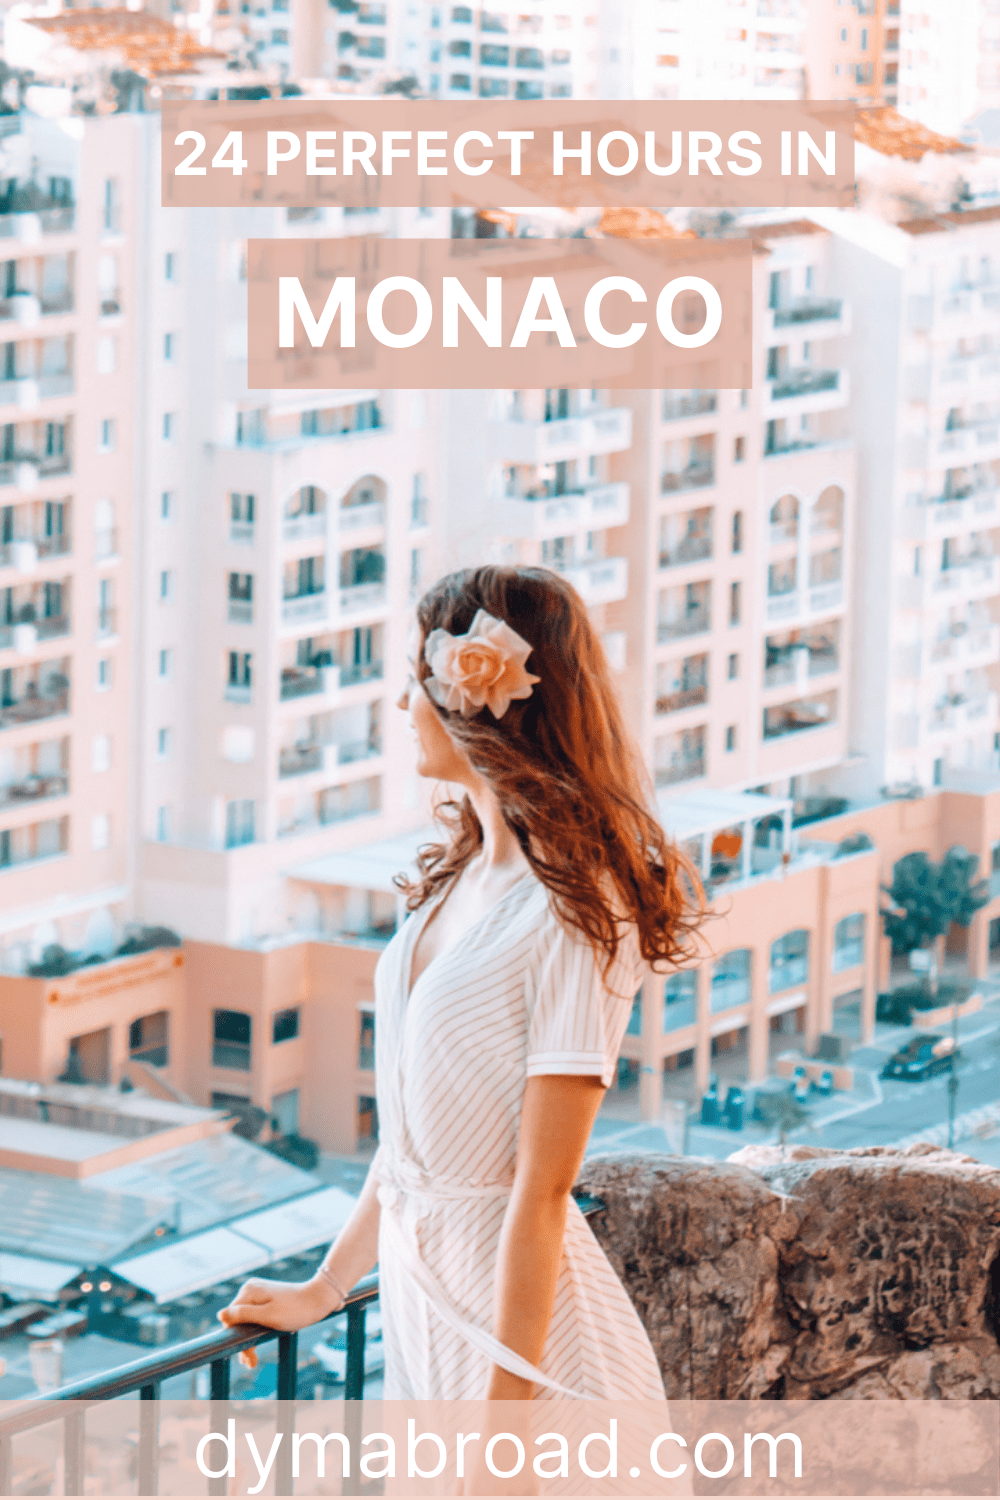 One day in Monaco second Pinterest image